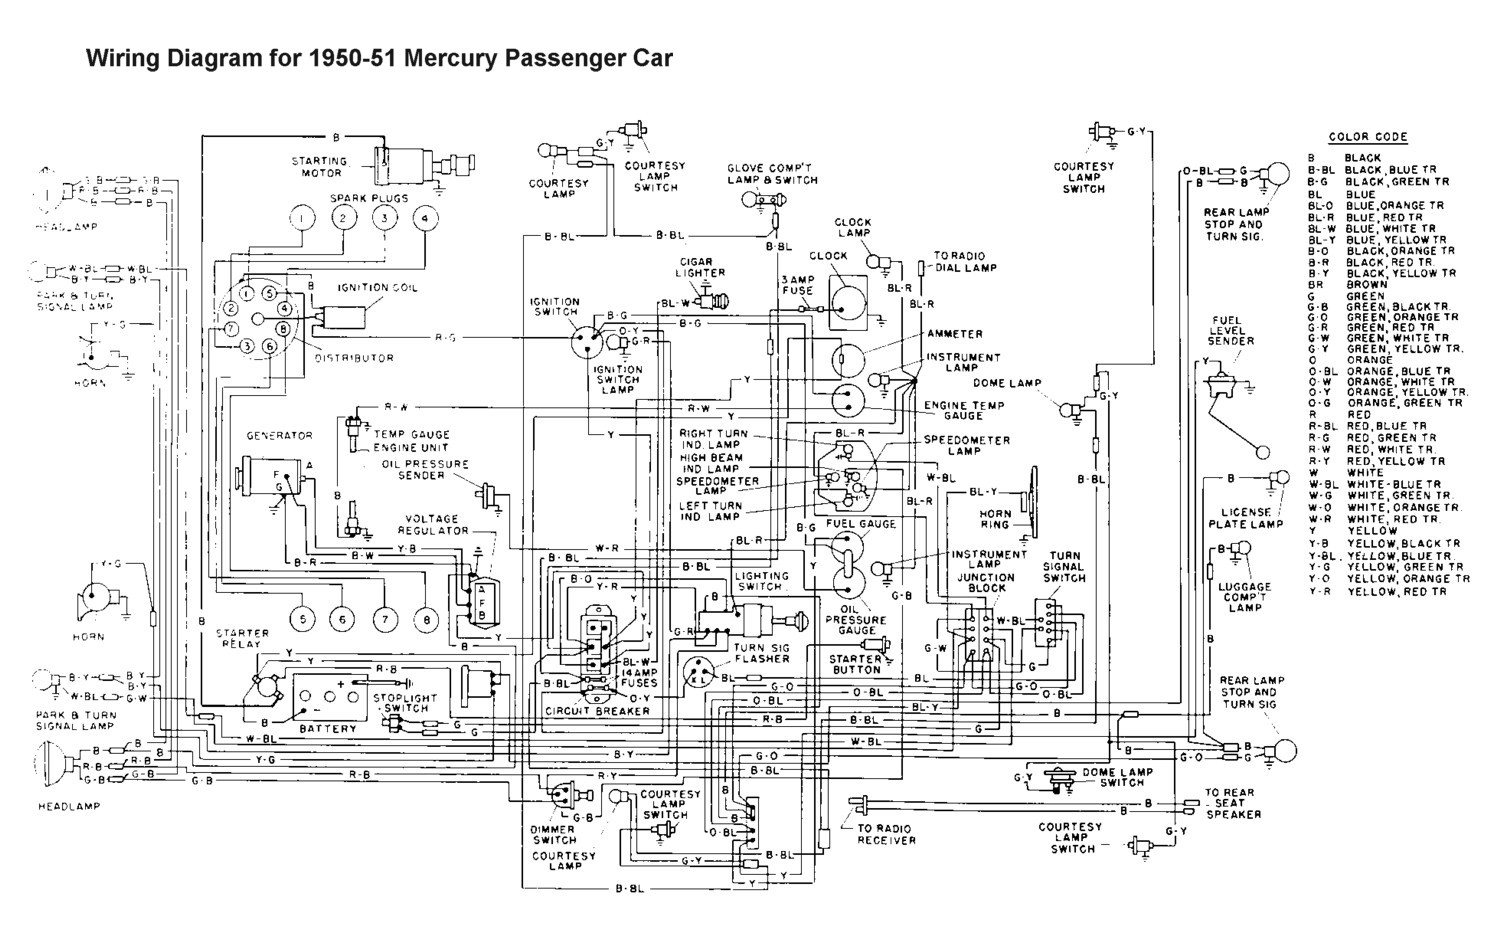 [WRG-7447] 1946 Gauge Wiring Diagram